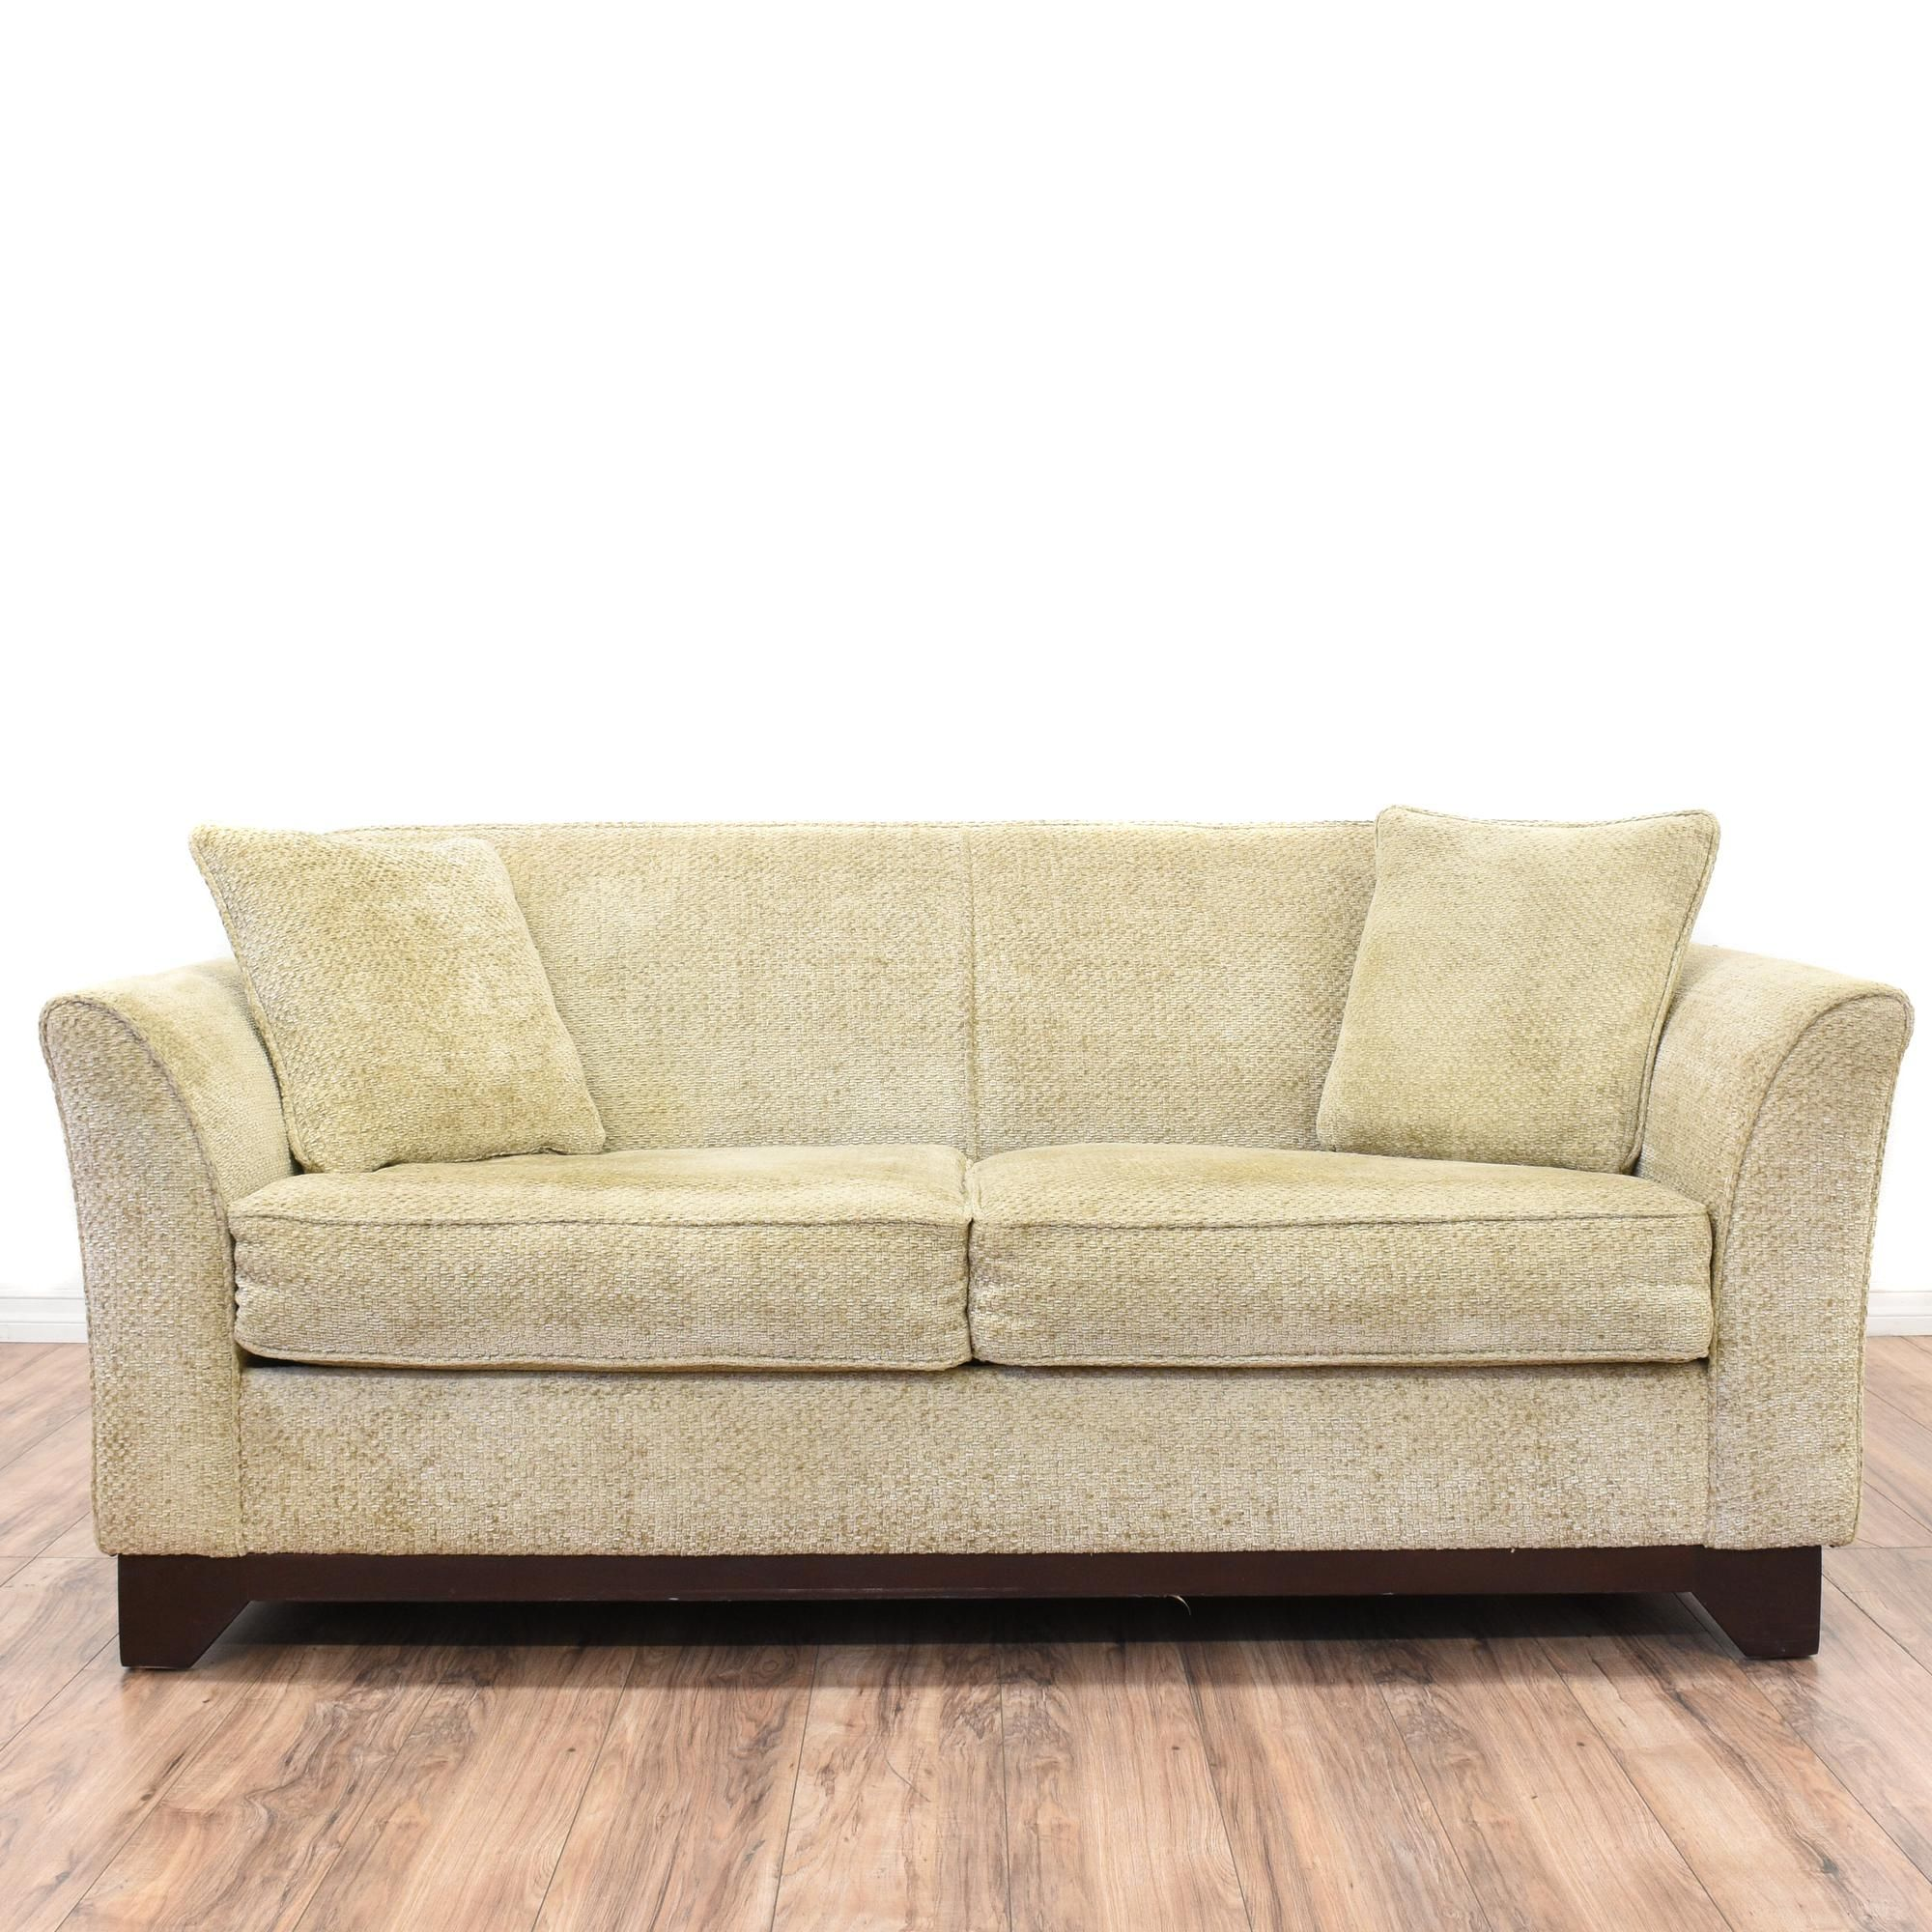 Tremendous This Sofa Bed Is Upholstered In A Soft Beige Microfiber Lamtechconsult Wood Chair Design Ideas Lamtechconsultcom